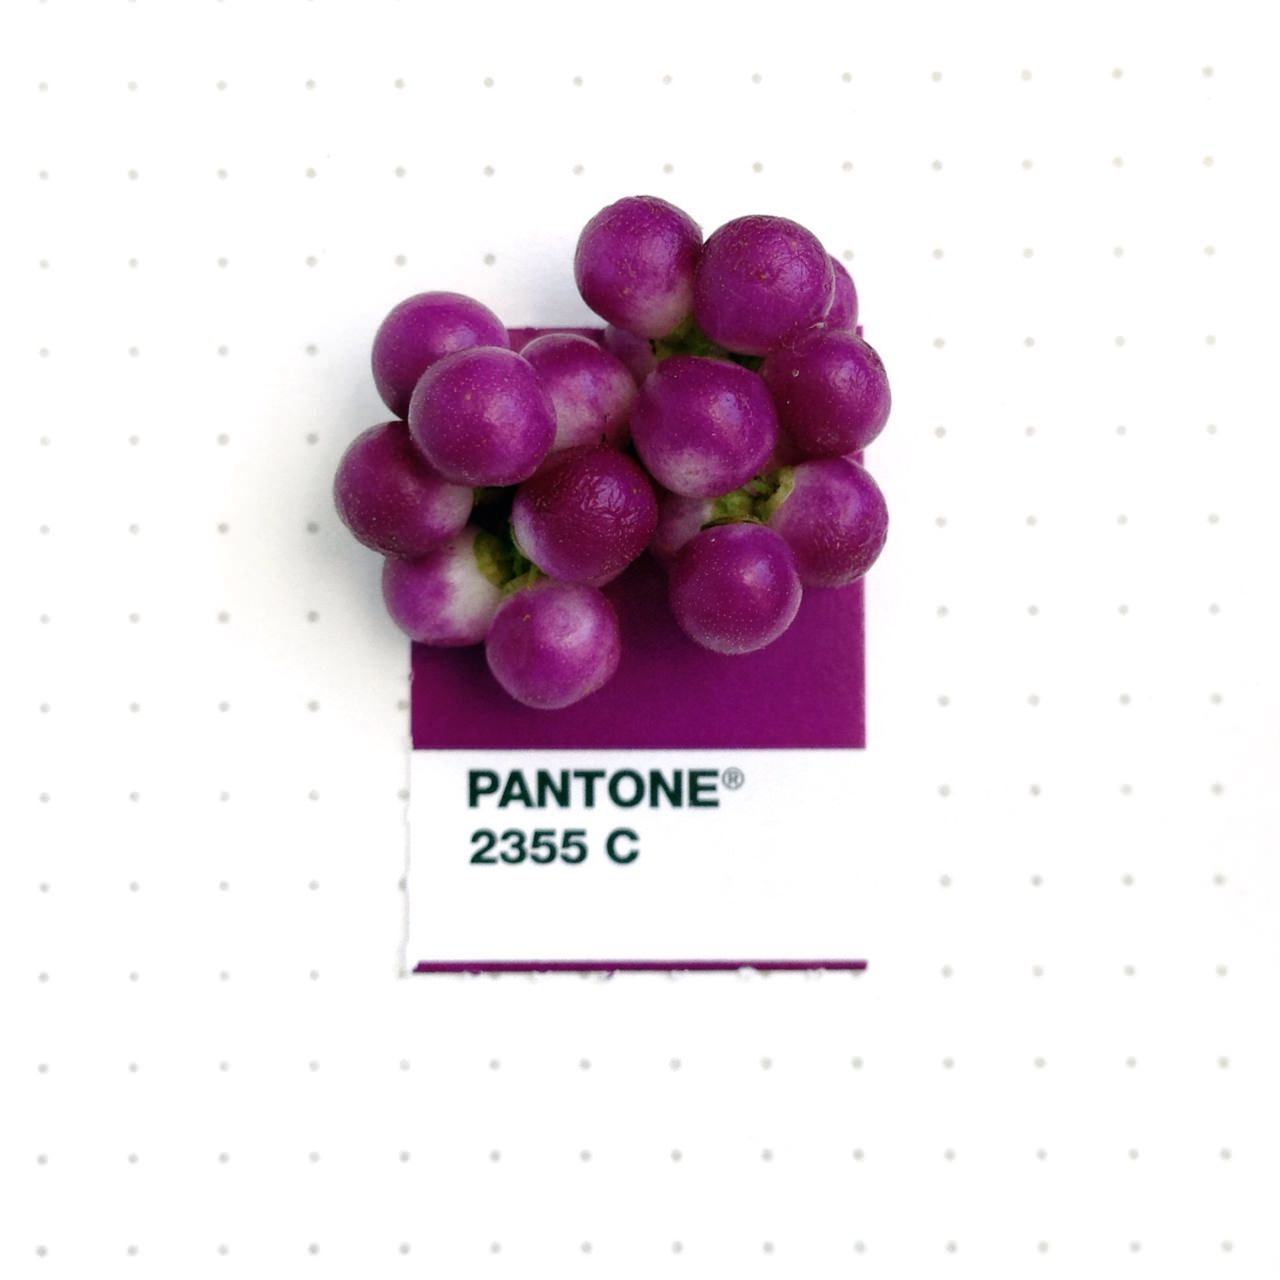 bridging-life-and-design-in-15-pantone-color-matches-15